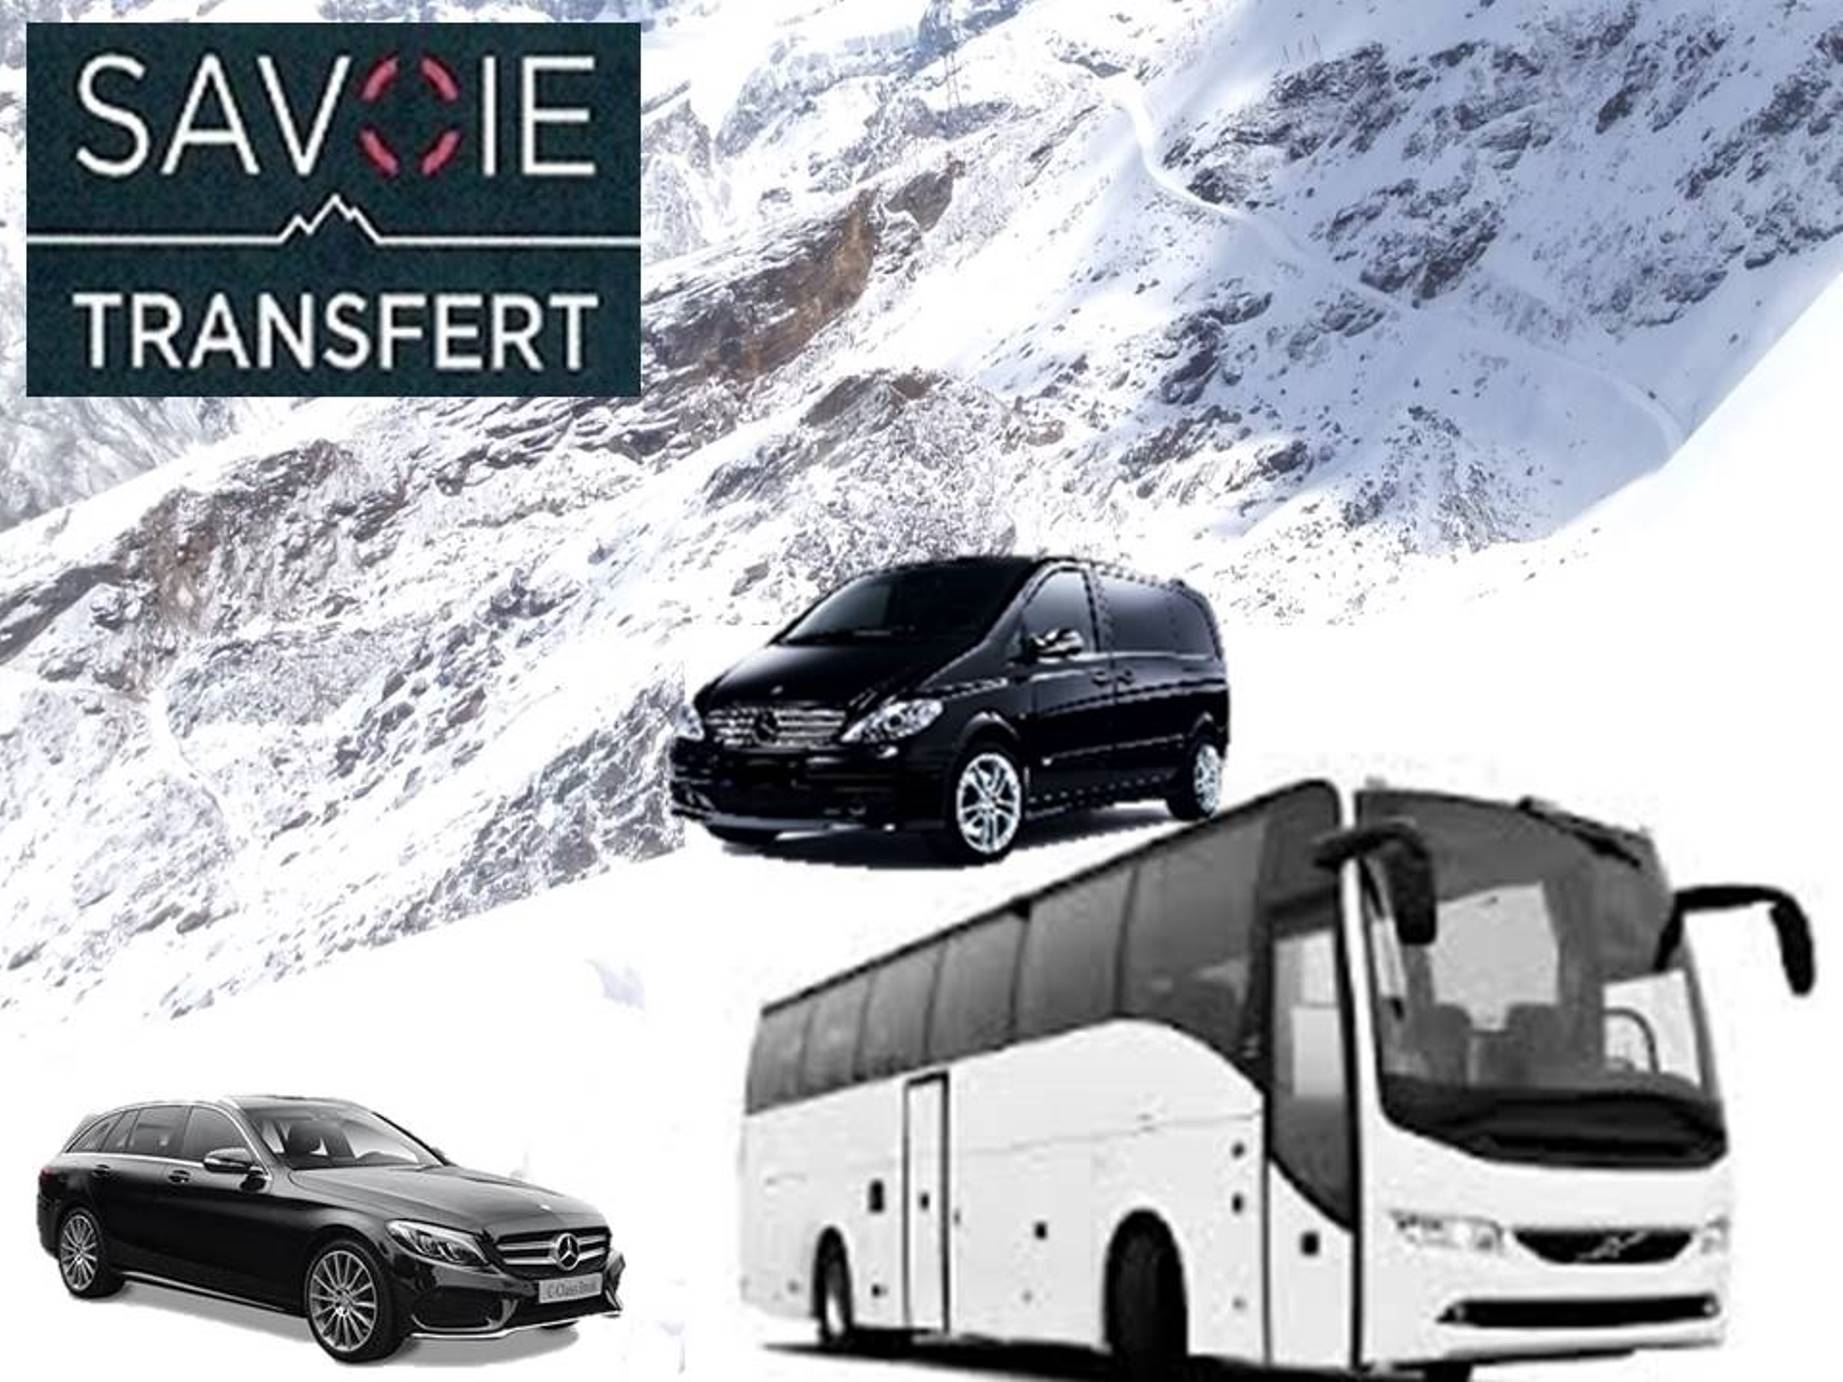 PRIVATE TRANSFER from LYON AIRPORT ROUND TRIP with VAL THORENS TRANSFERT